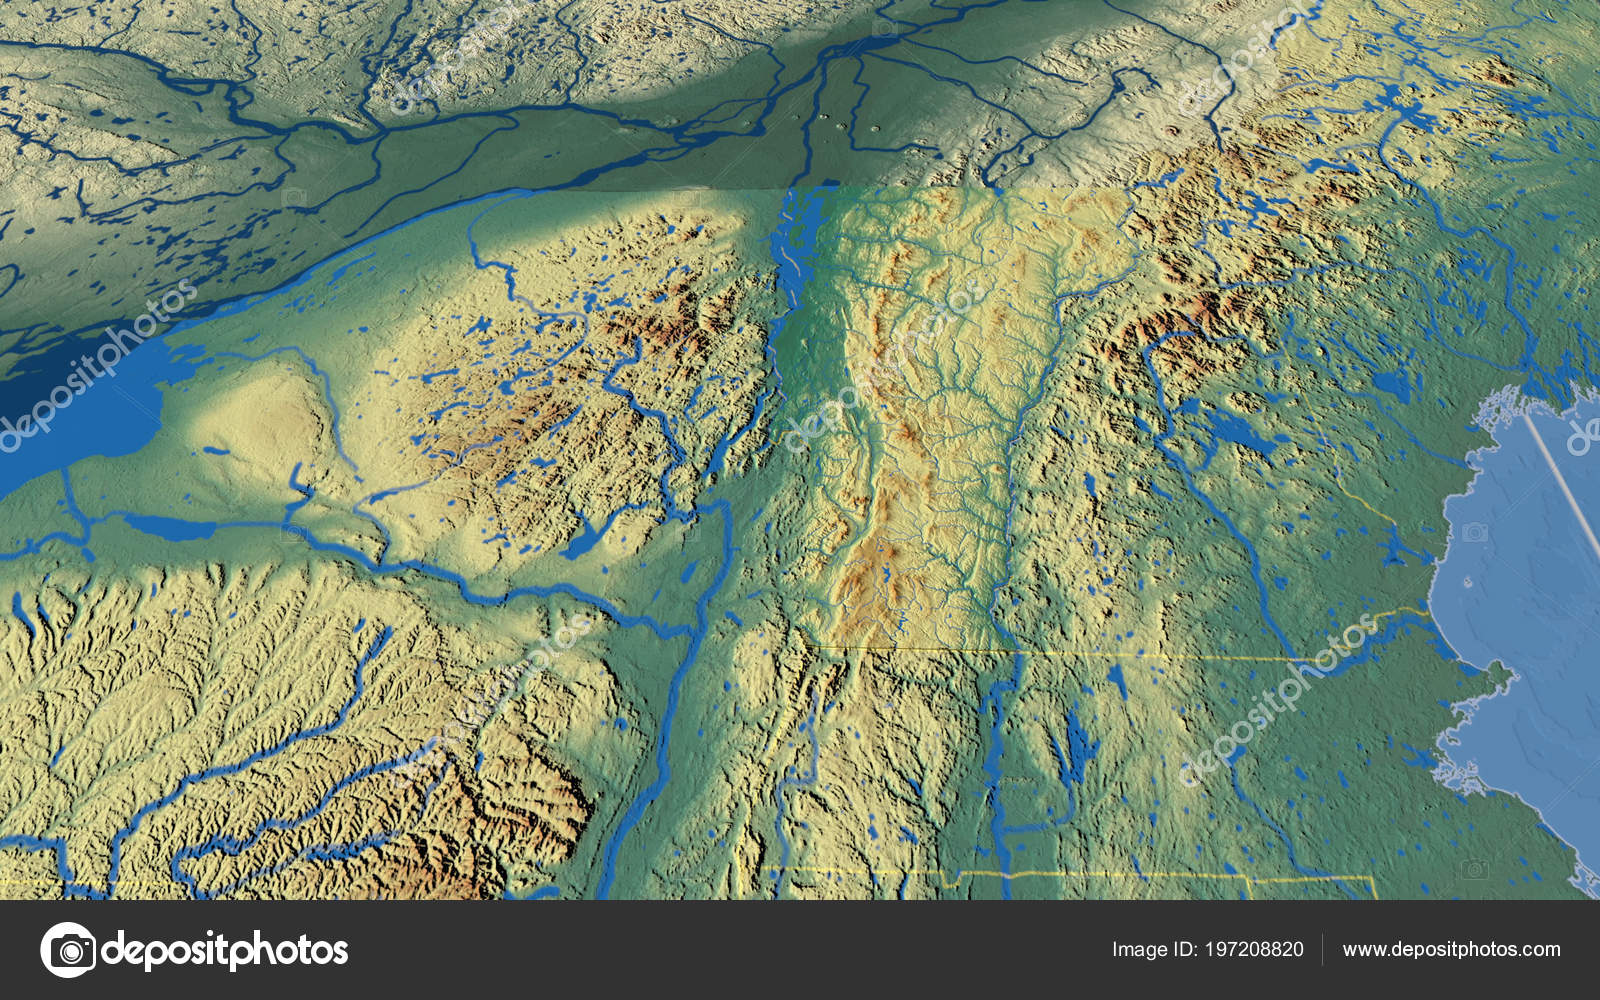 Relief Map Of United States.Vermont Region United States Extruded Topographic Relief Map Stock